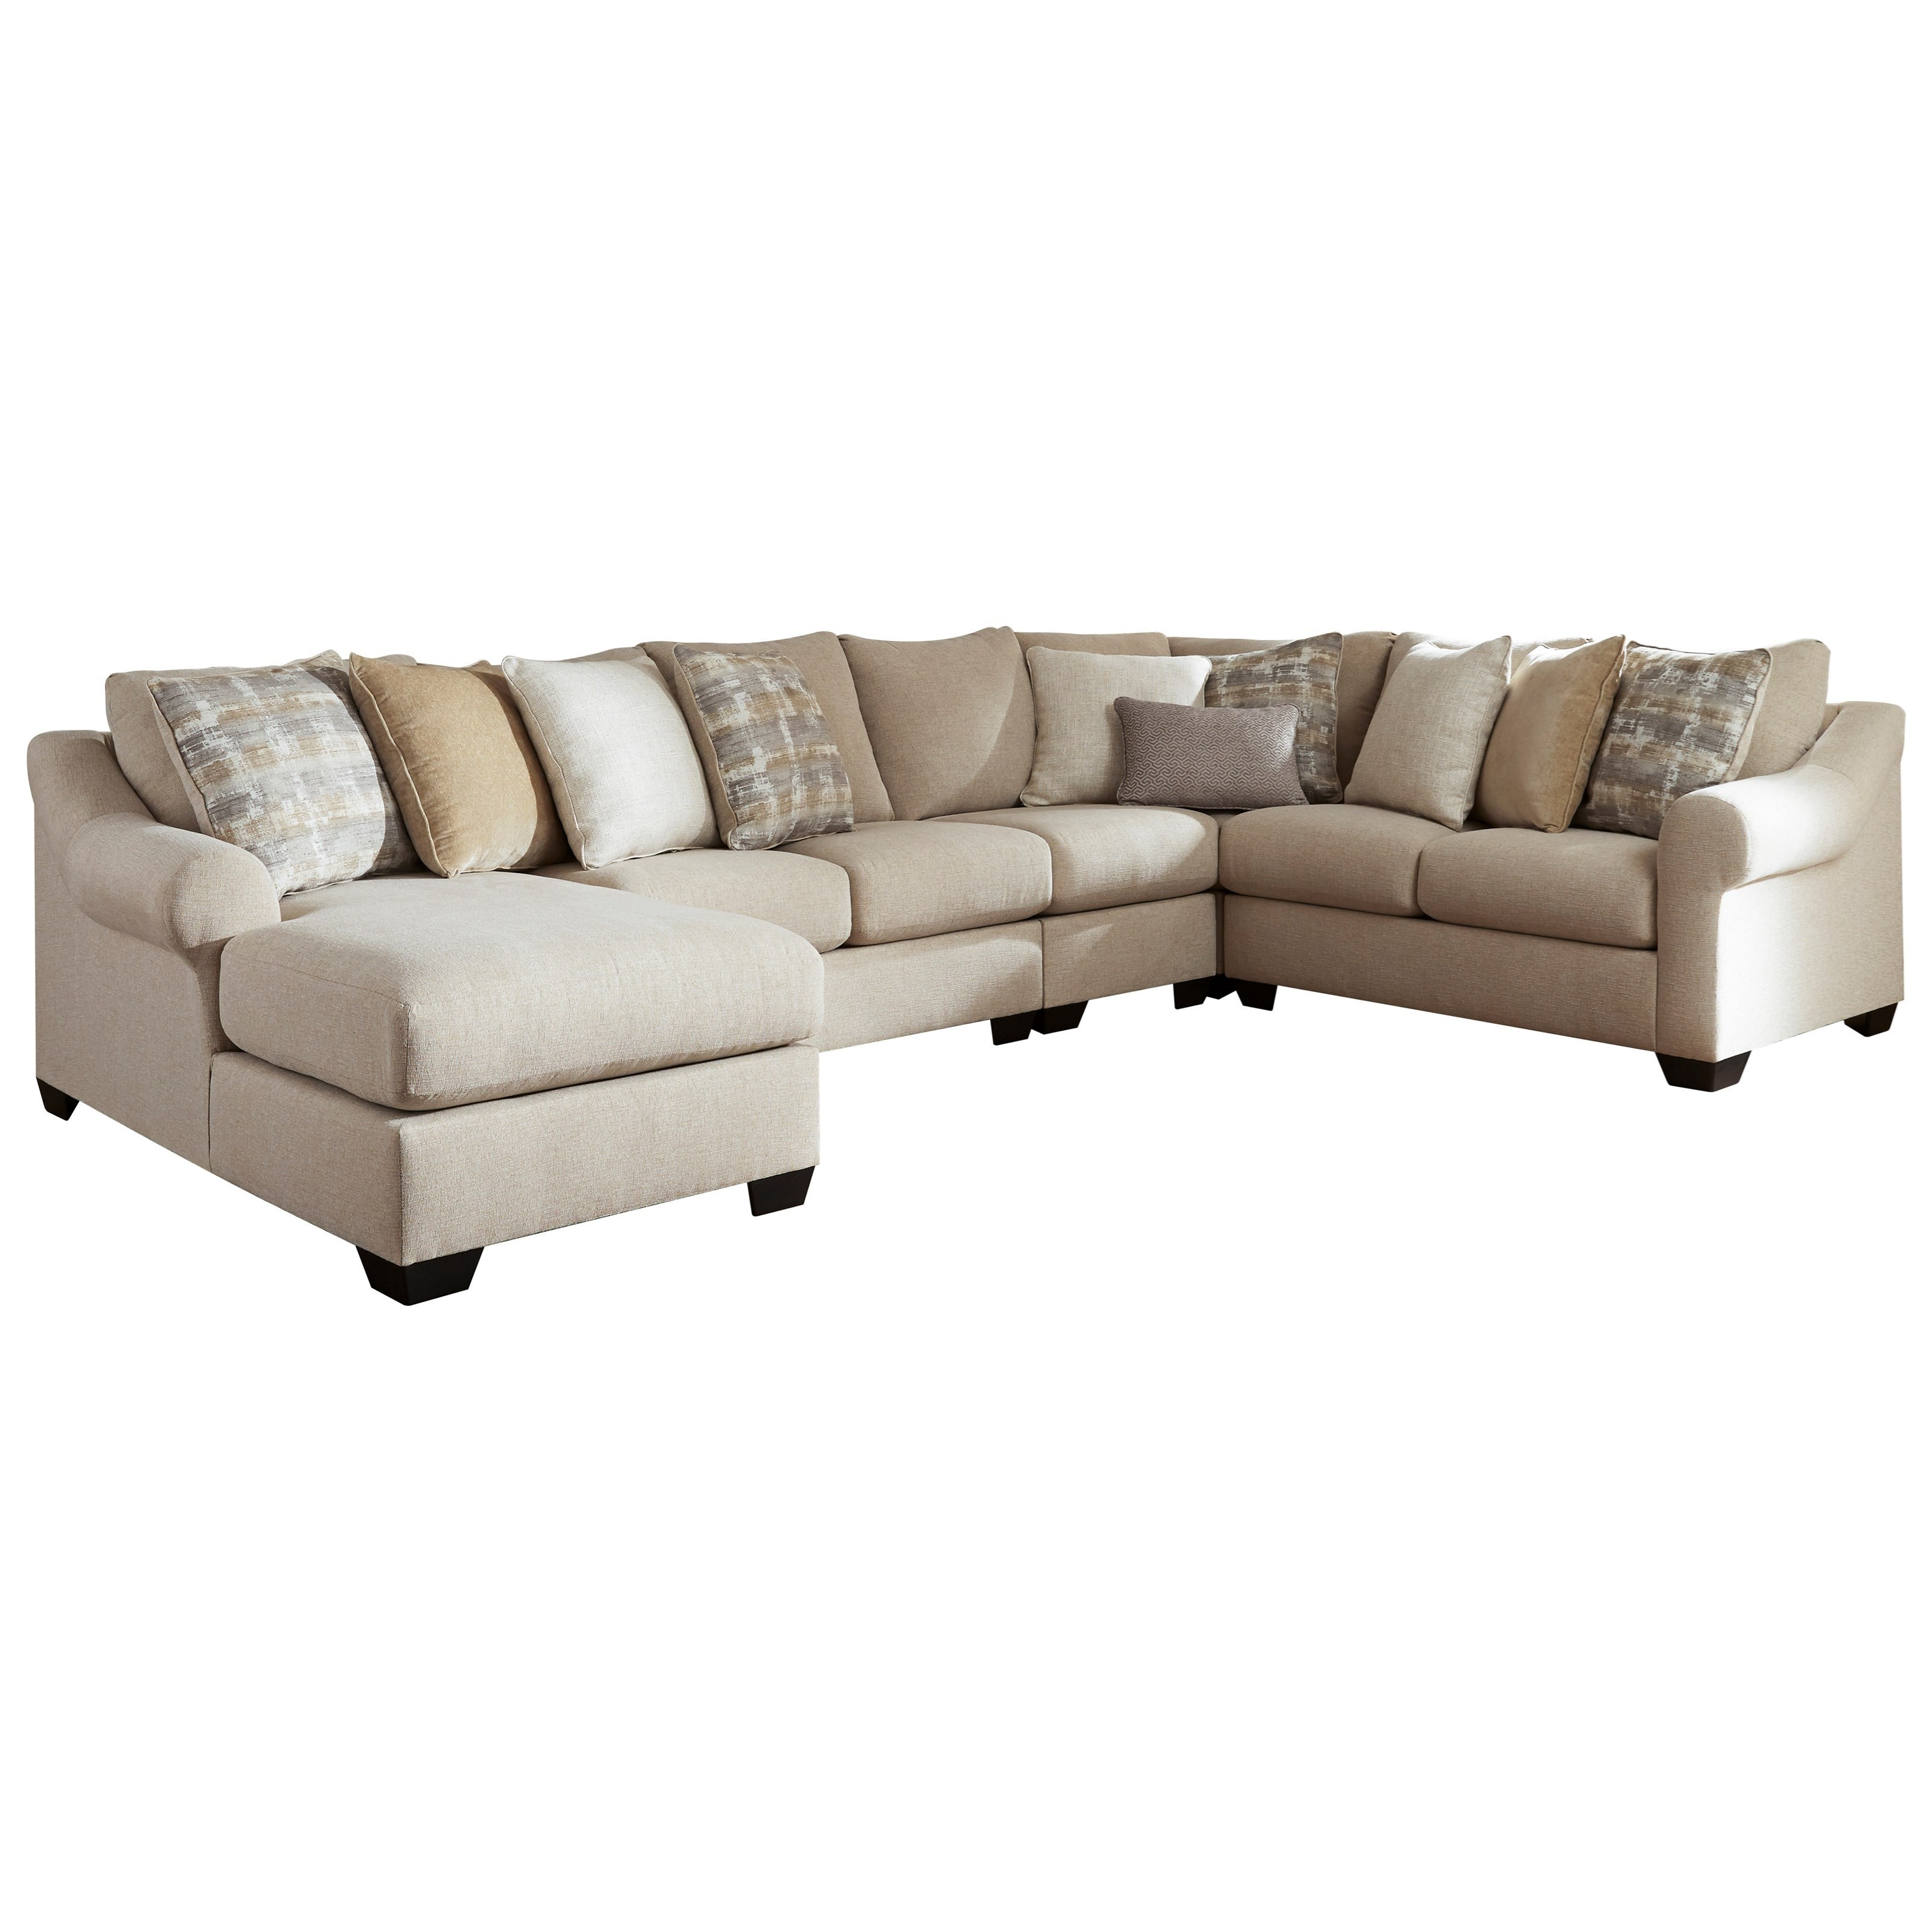 Ingleside 5-Piece Sectional with Chaise by Benchcraft at Zak's Warehouse Clearance Center